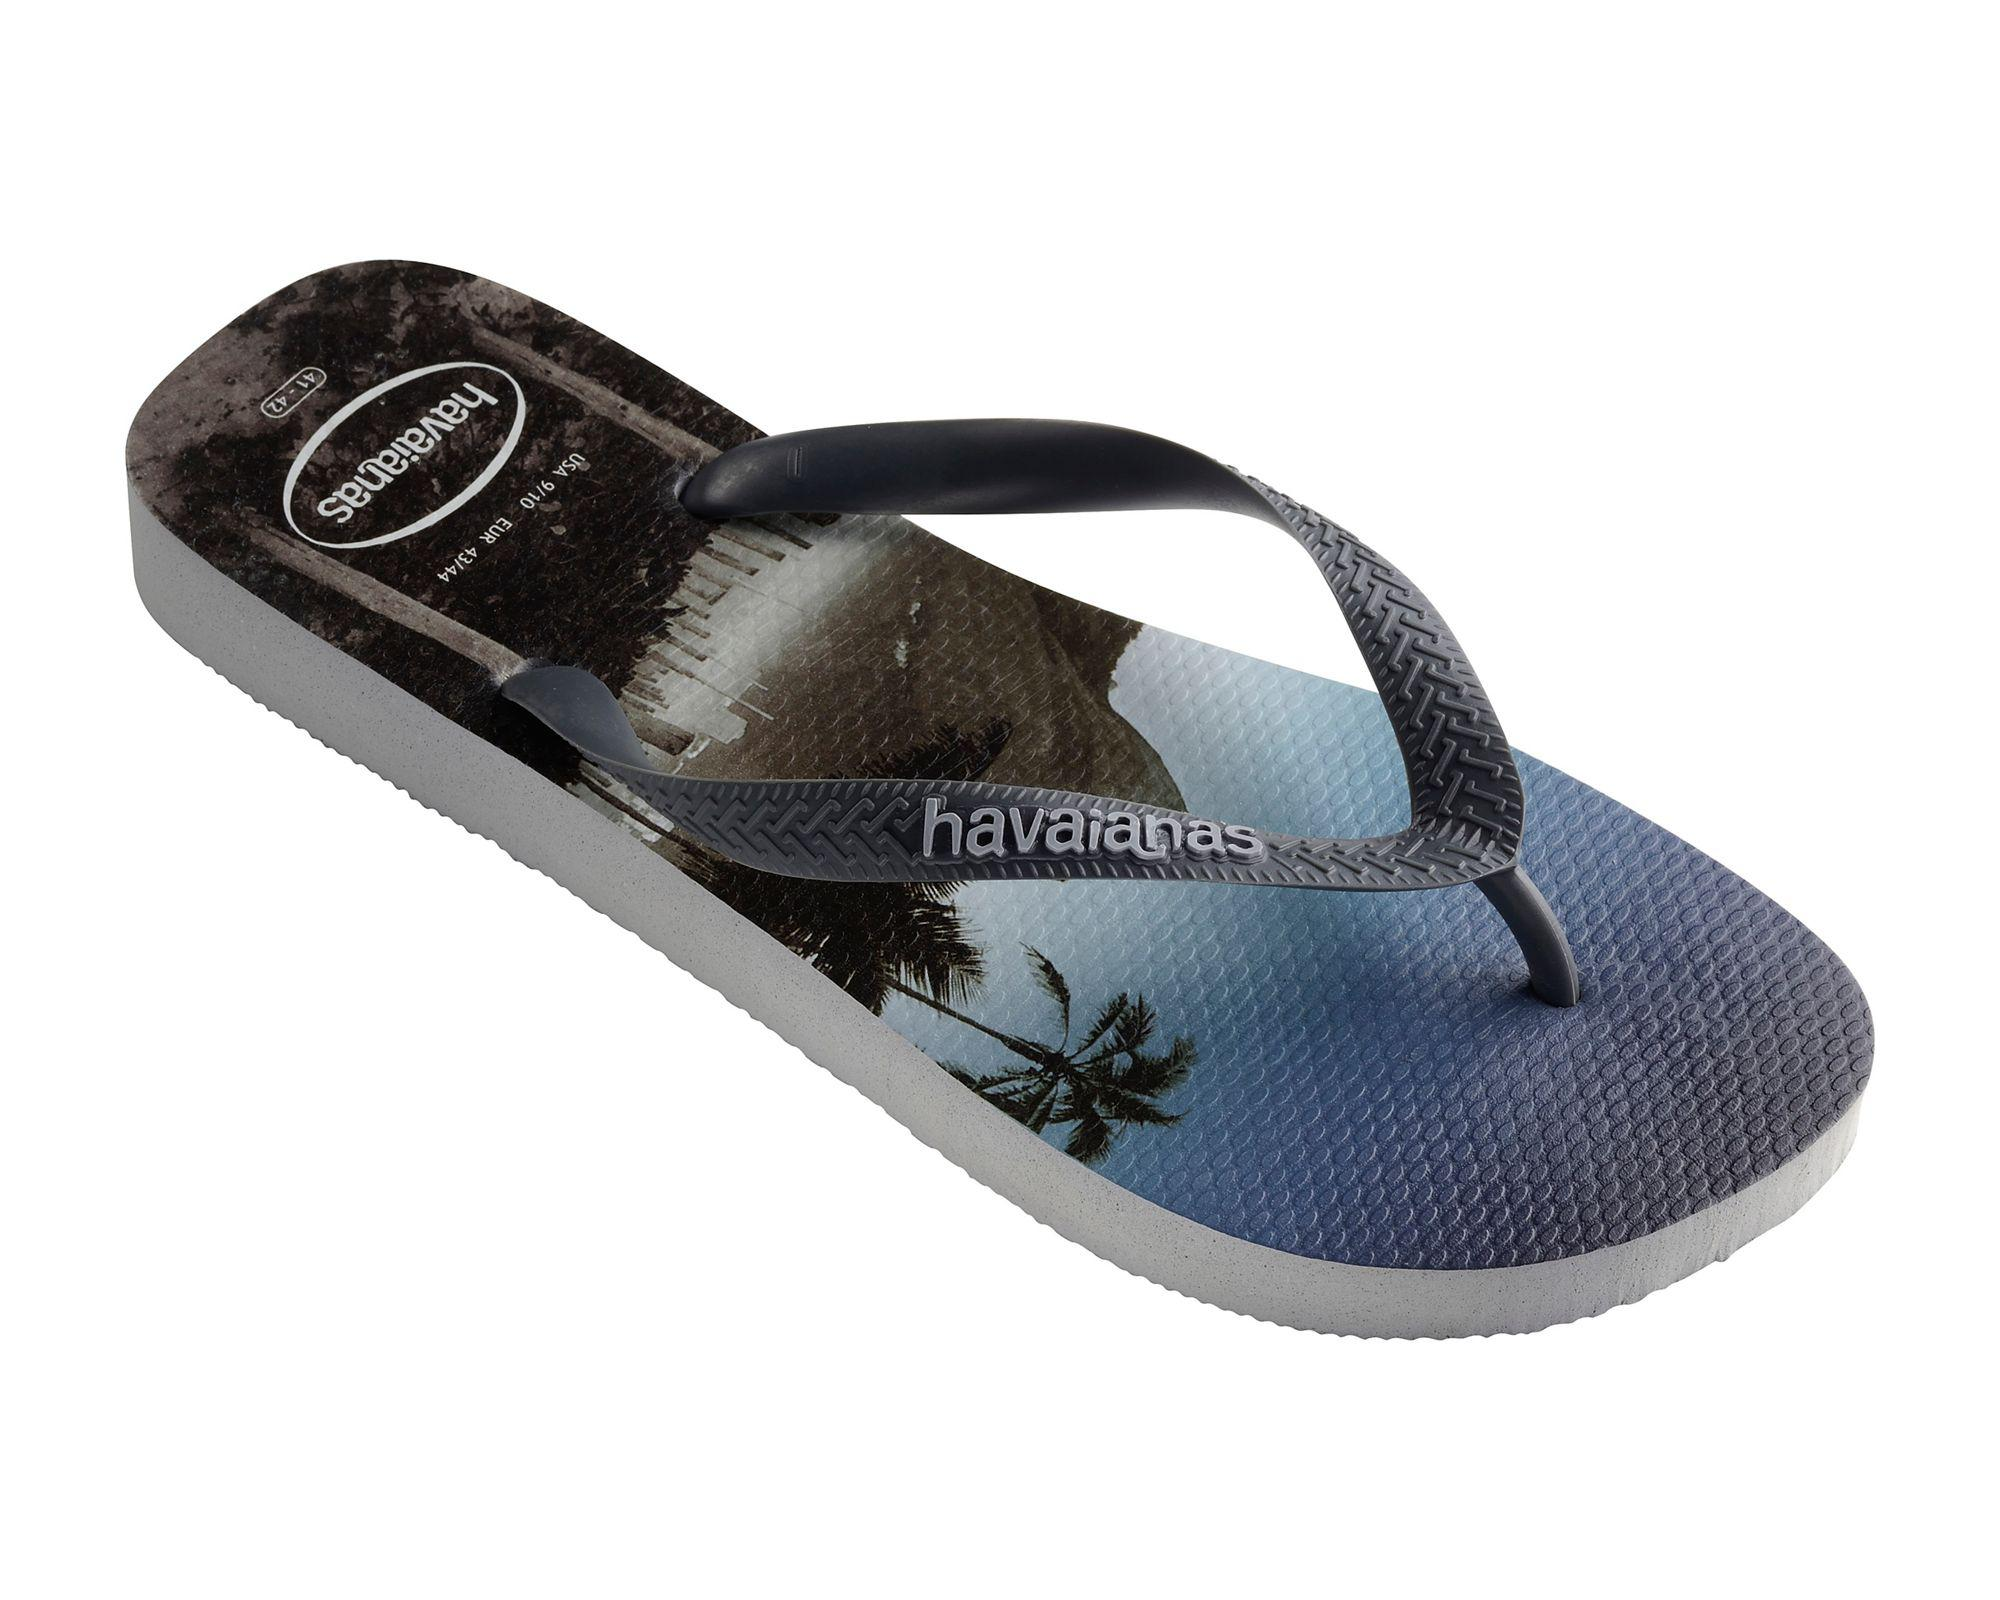 583b4ea7b4b Havaianas Grey Hype Flip Flops in Gray for Men - Lyst